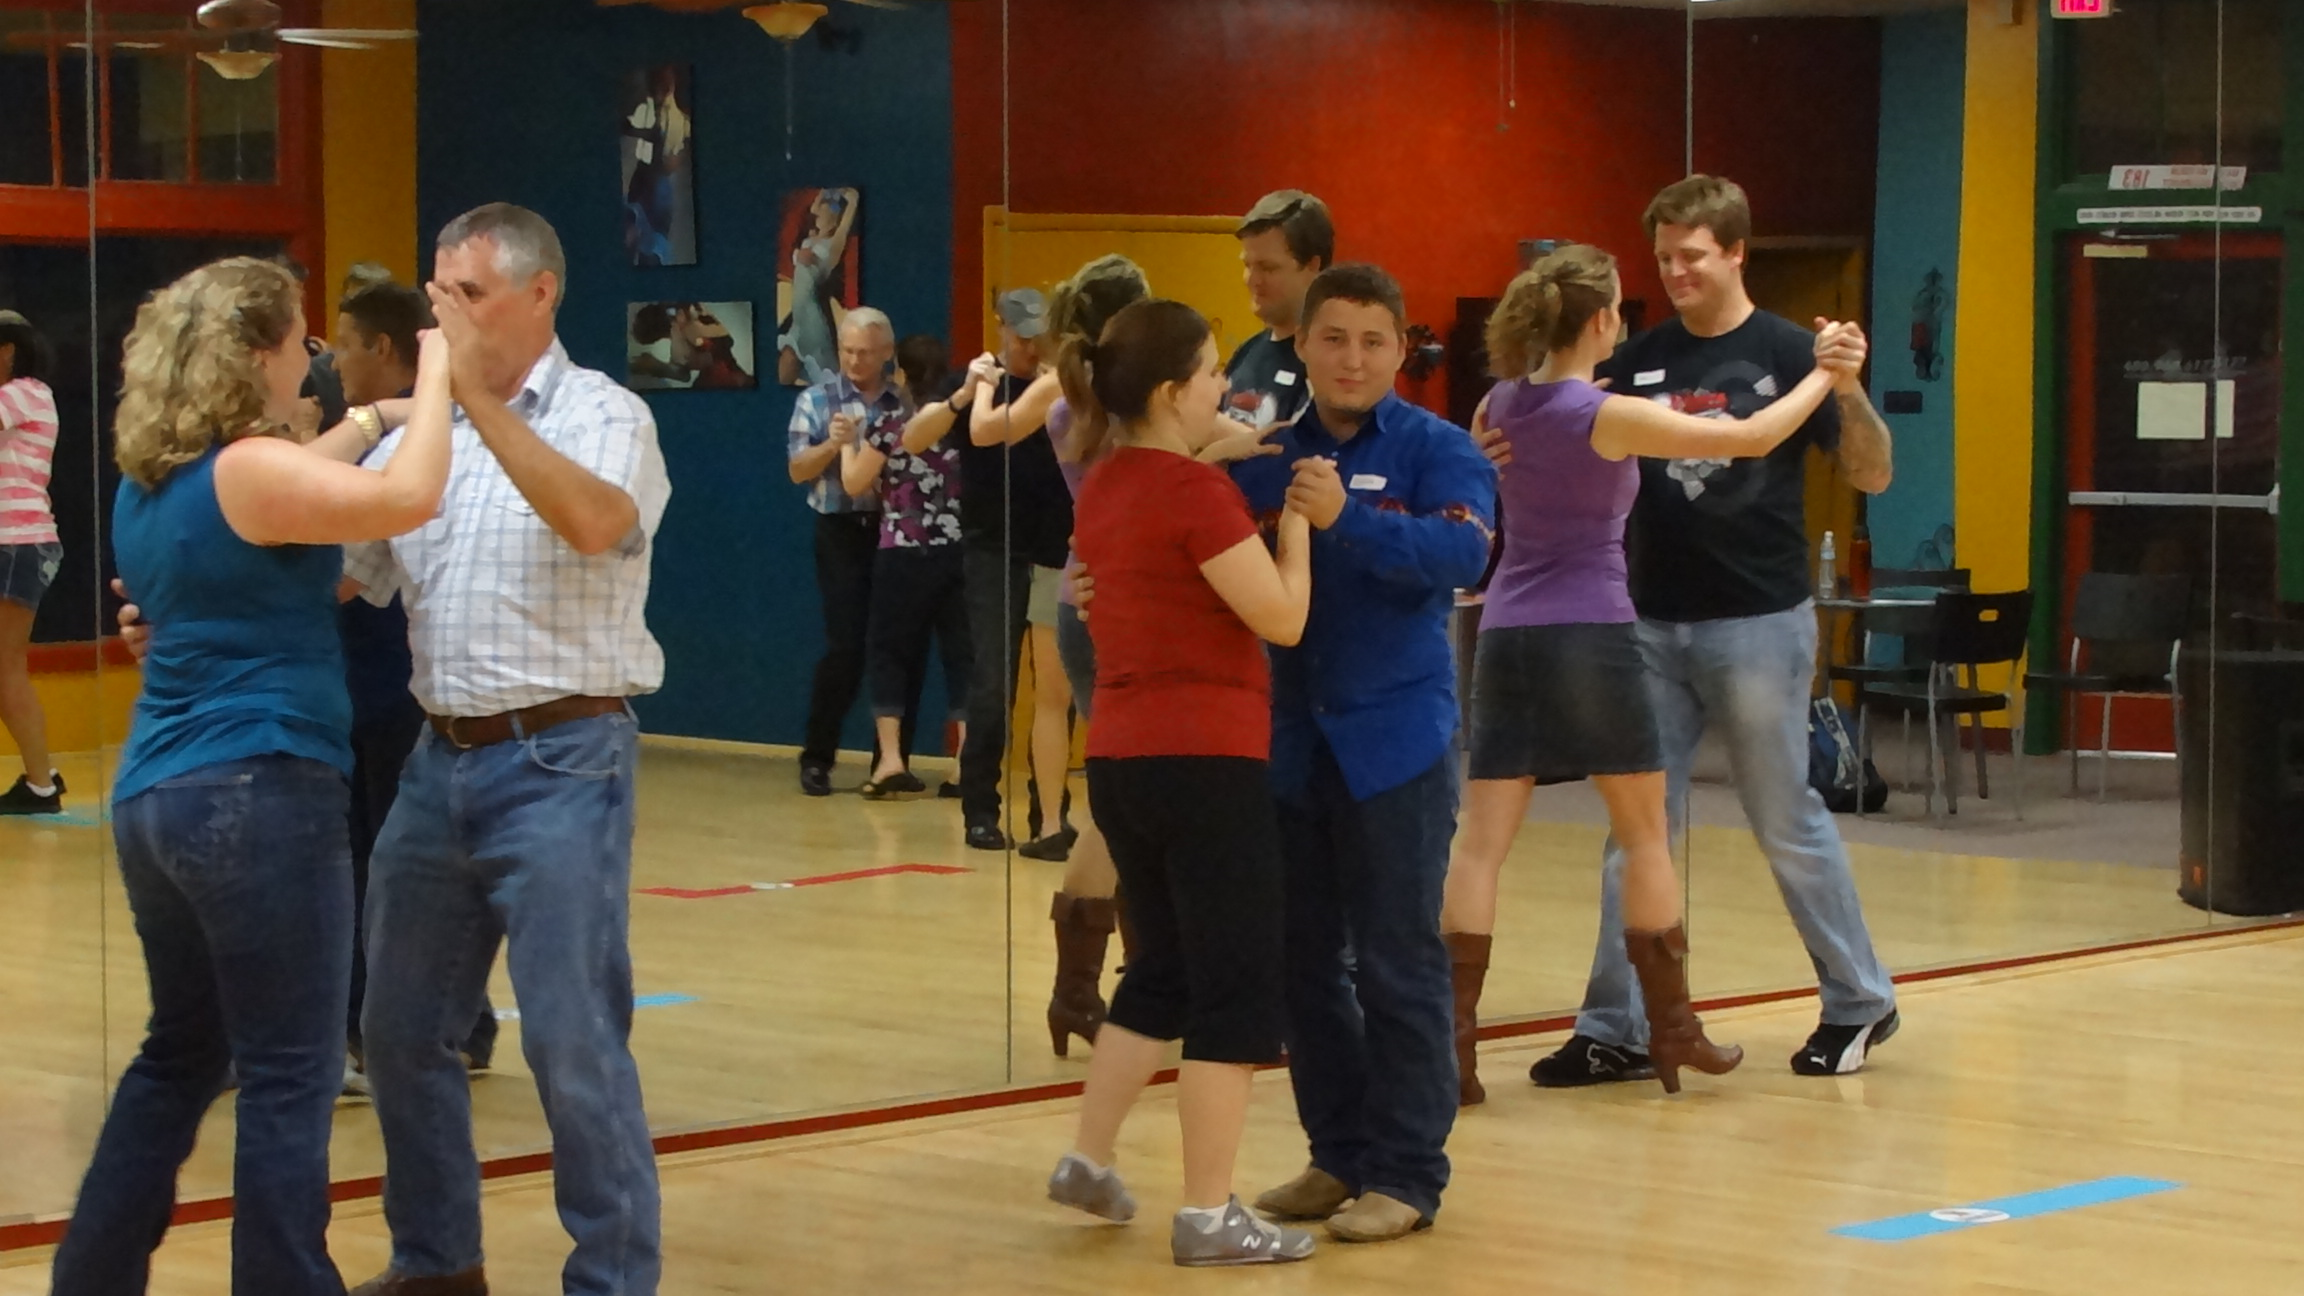 See how to lose weight and gain muscle through ballroom dancing social dancing is a great way ccuart Choice Image